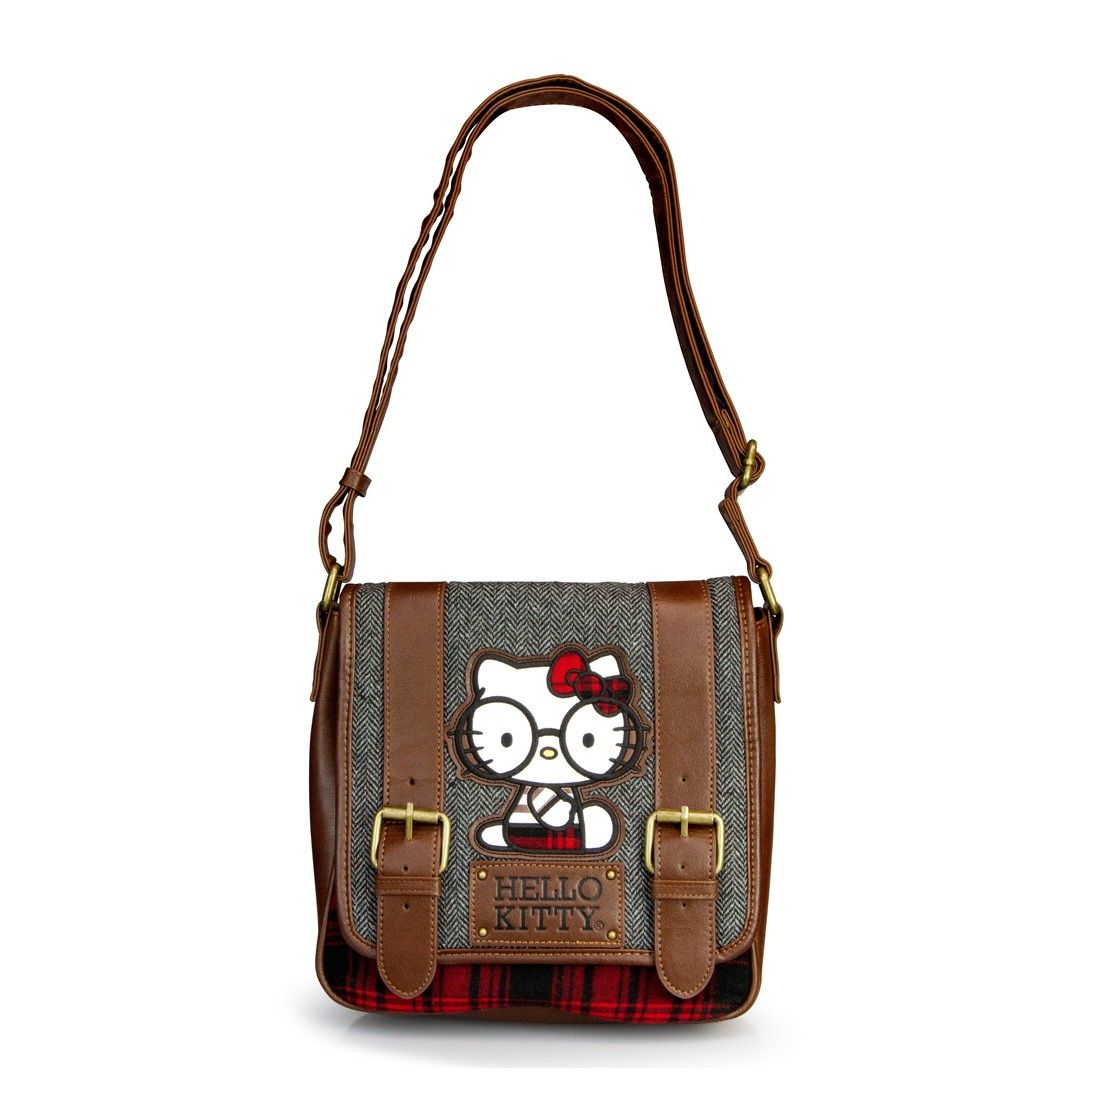 4d49222f477a Also love this one hello kitty nerd with round glasses crossbody jpg  1100x1100 Nerdy hello kitty